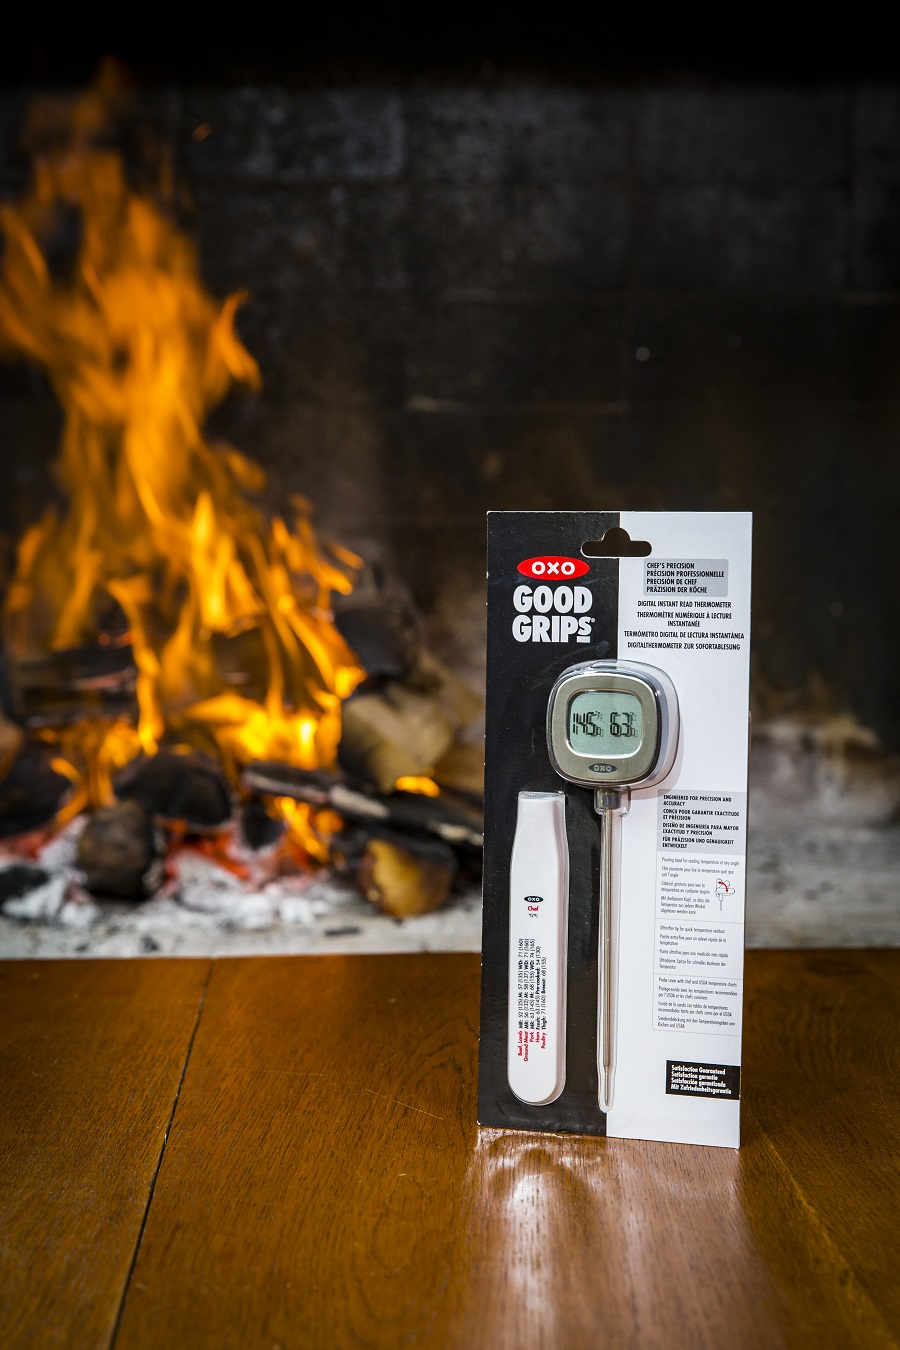 OXO Good Grips Digital Instant Read Thermometer